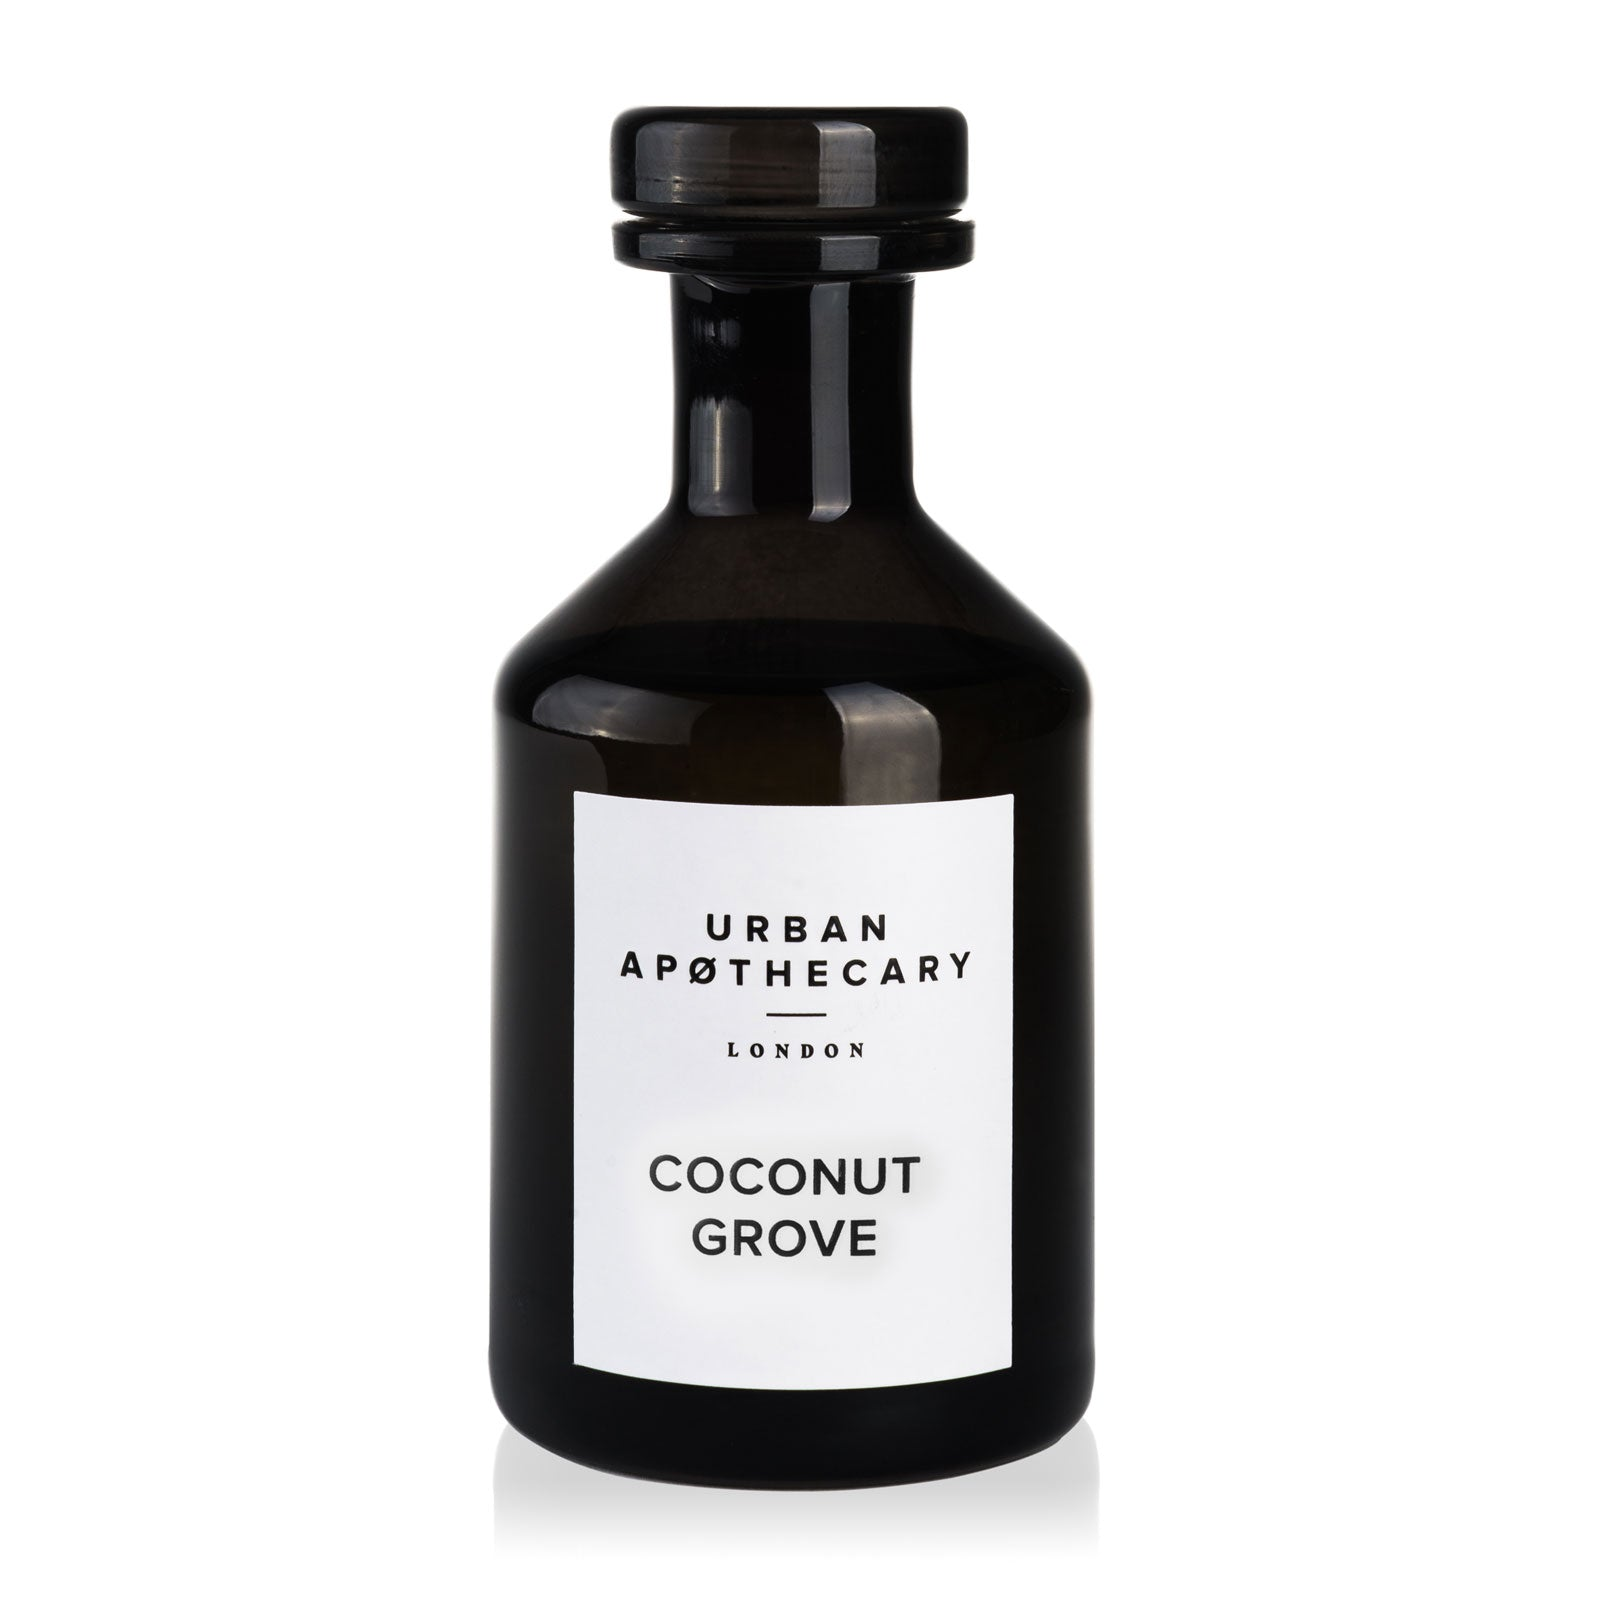 Urban Apothecary London Coconut Grove Luxury Diffuser 200ml